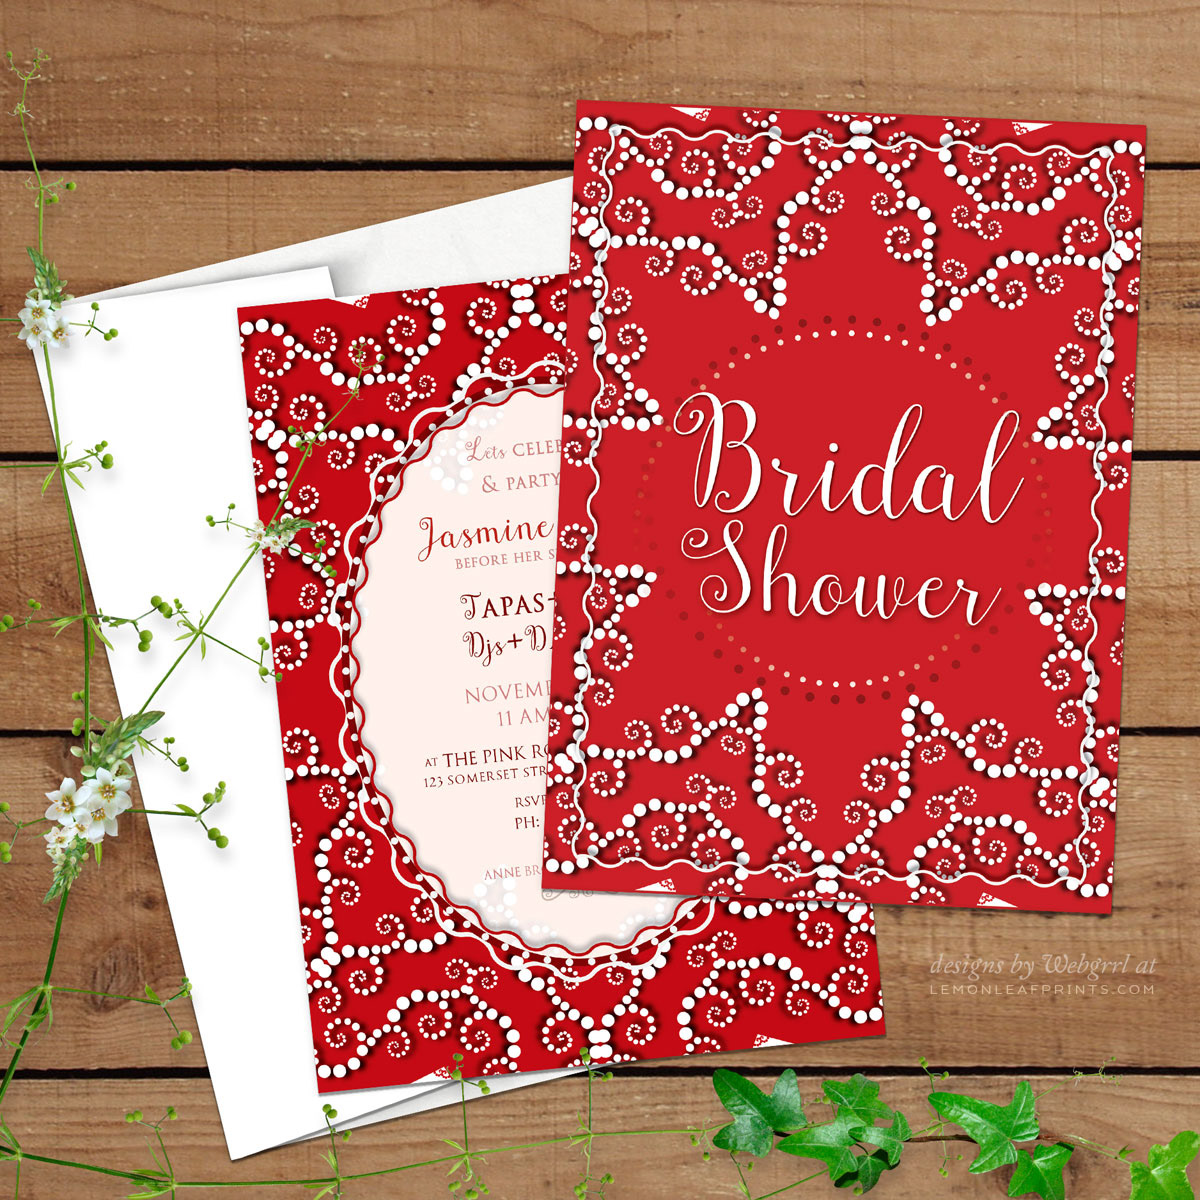 Webgrrl - Intuitive Digital Artist - Red & White | Invitations